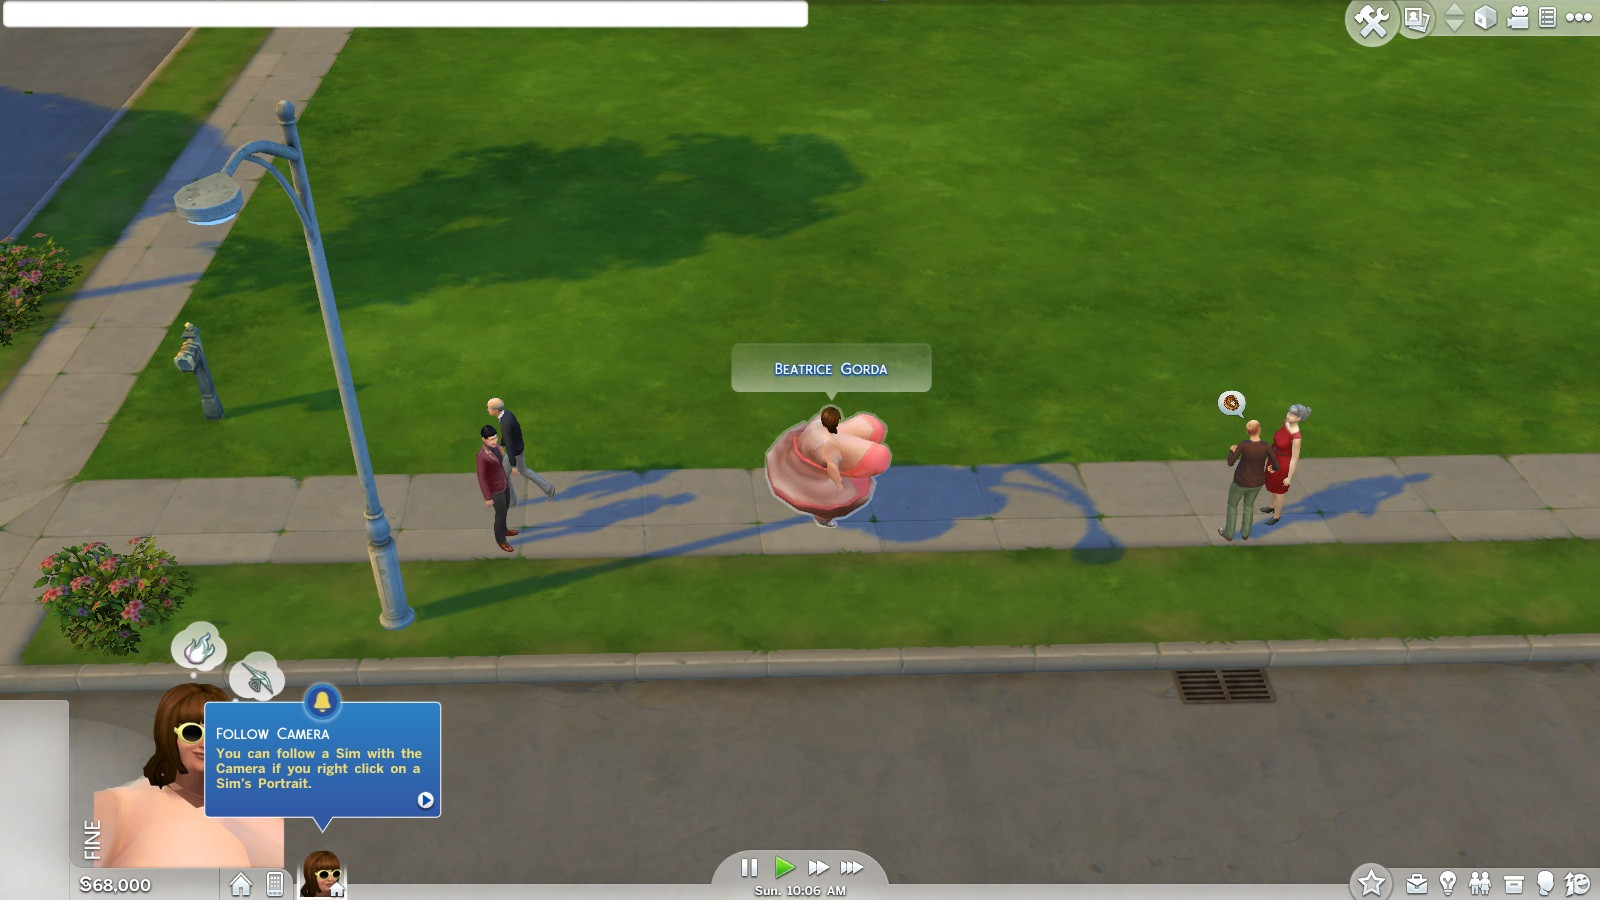 You can create ridiculous Sims